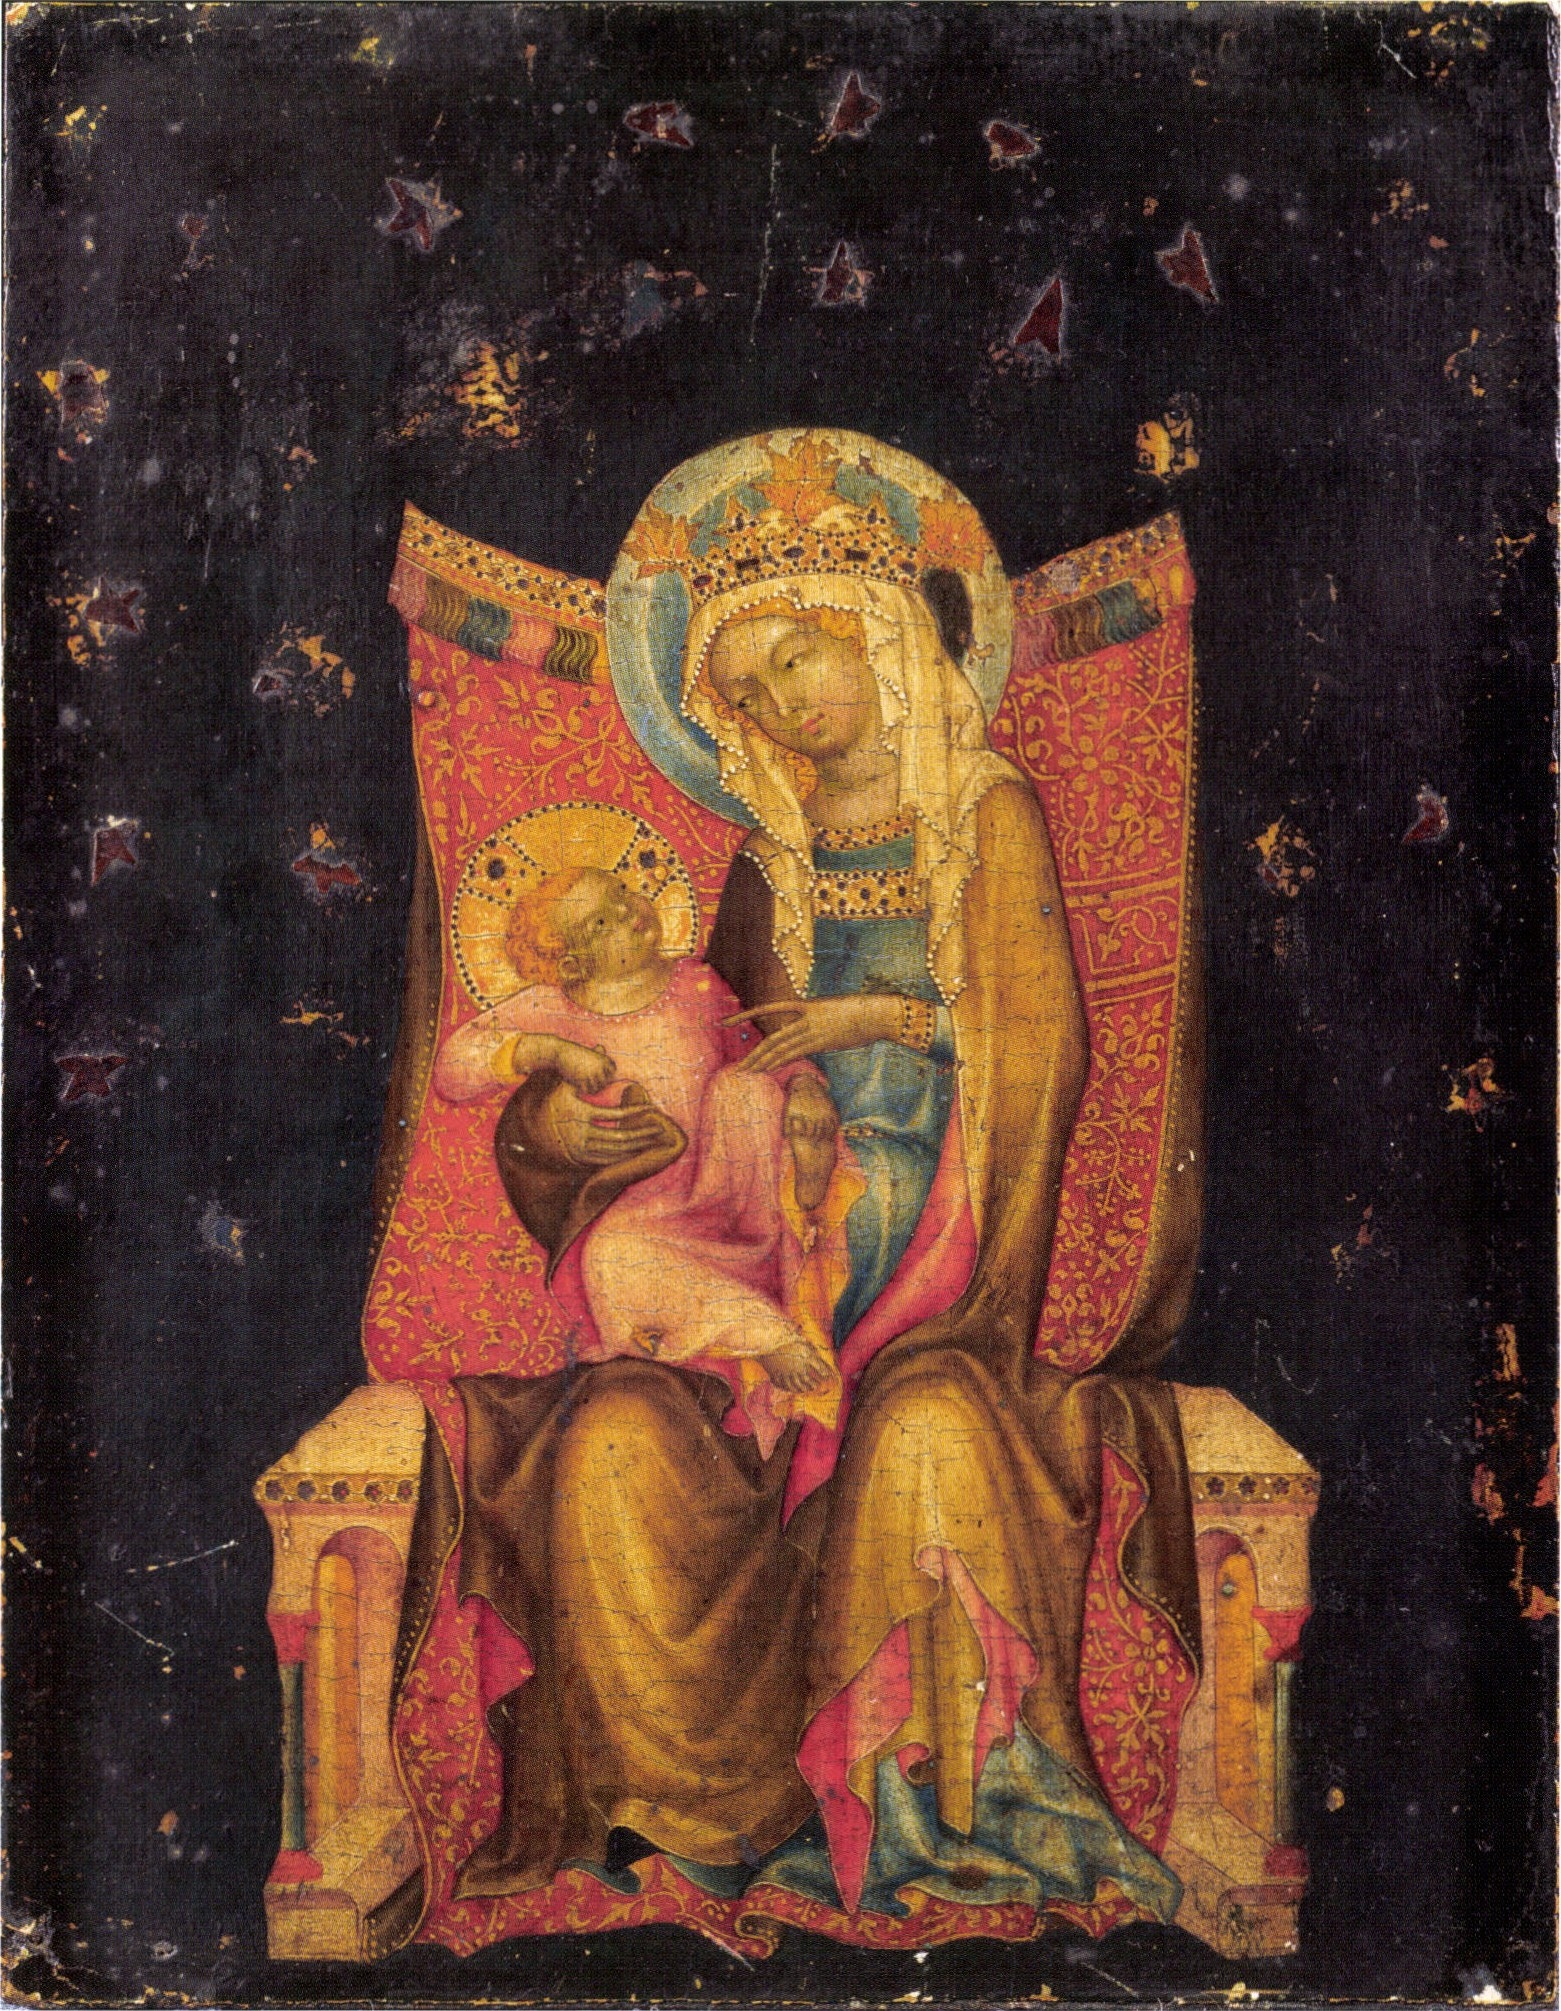 The Master of Vyssi Brod - The Virgin and Child on the Throne